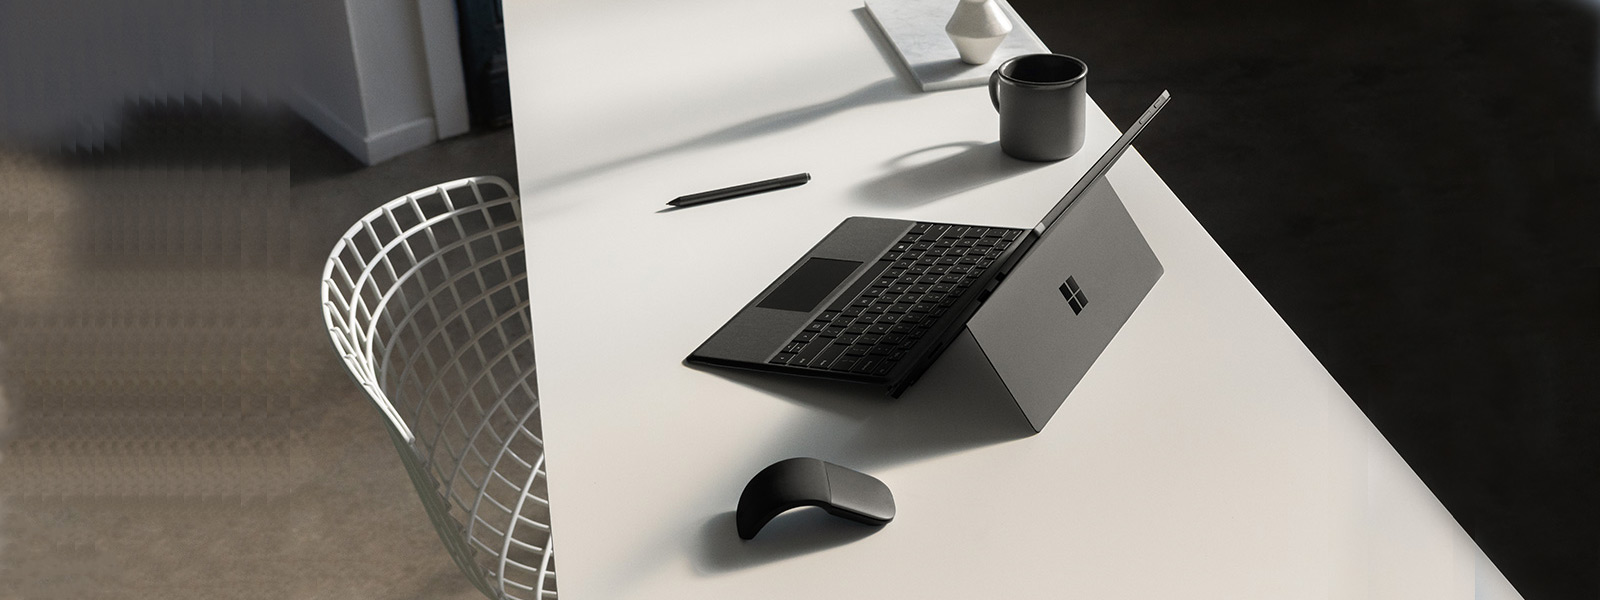 Surface Pro 6 på ett skrivbord i bärbar dator-läge med Surface Pro Type Cover, Surface-penna och Surface Arc Mouse